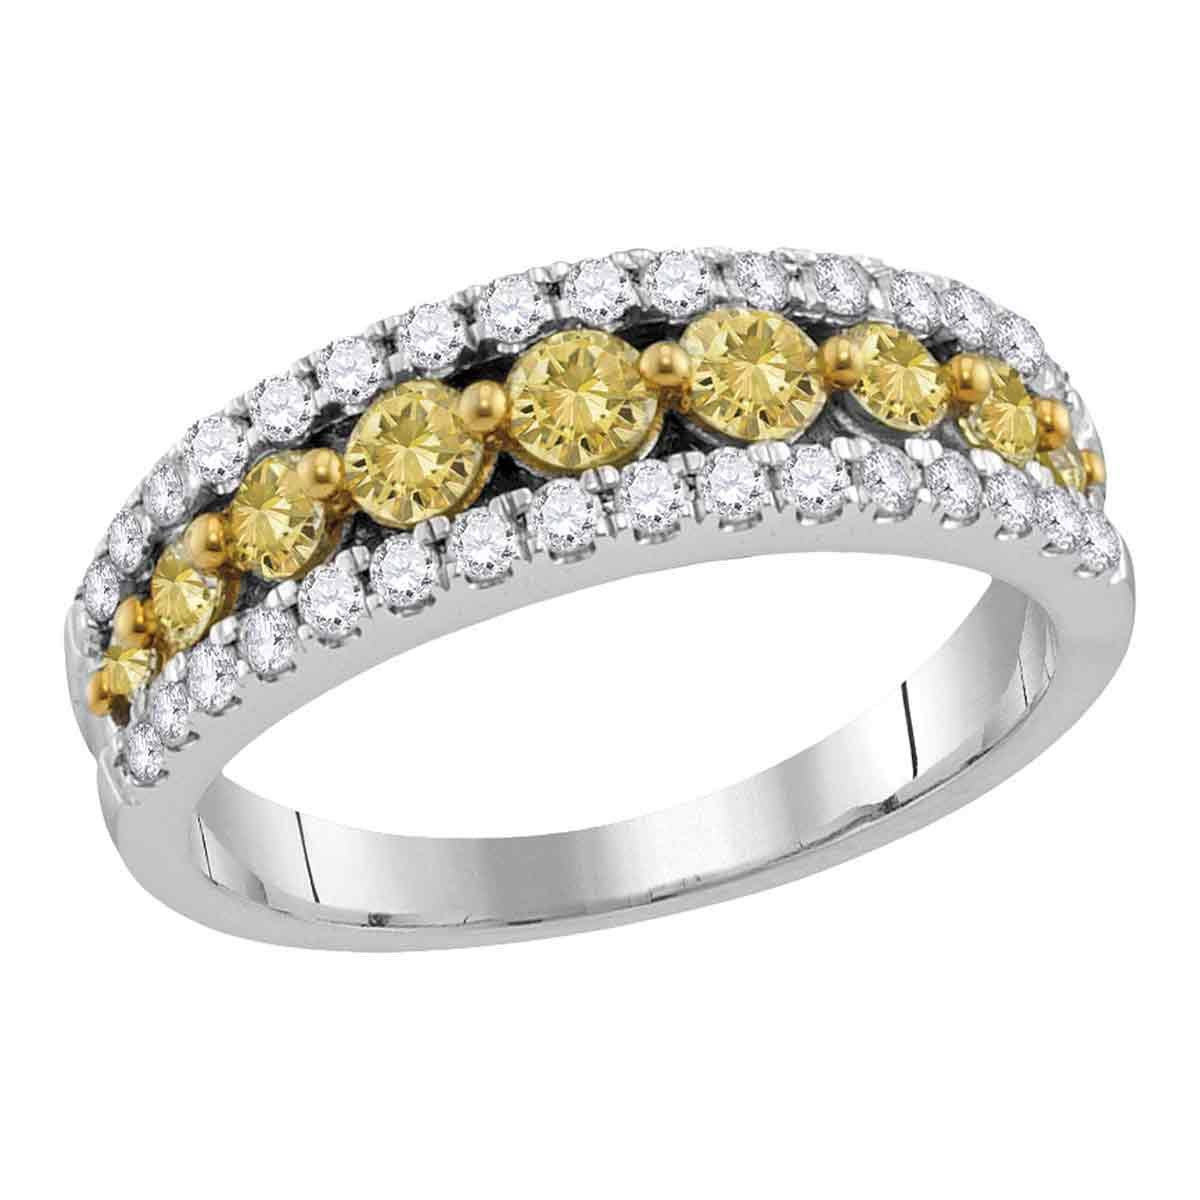 14k White Gold Yellow Diamond Fashion Band Semi Eternity Ring Round Bridal Style Fancy 1/2 ctw Size 8